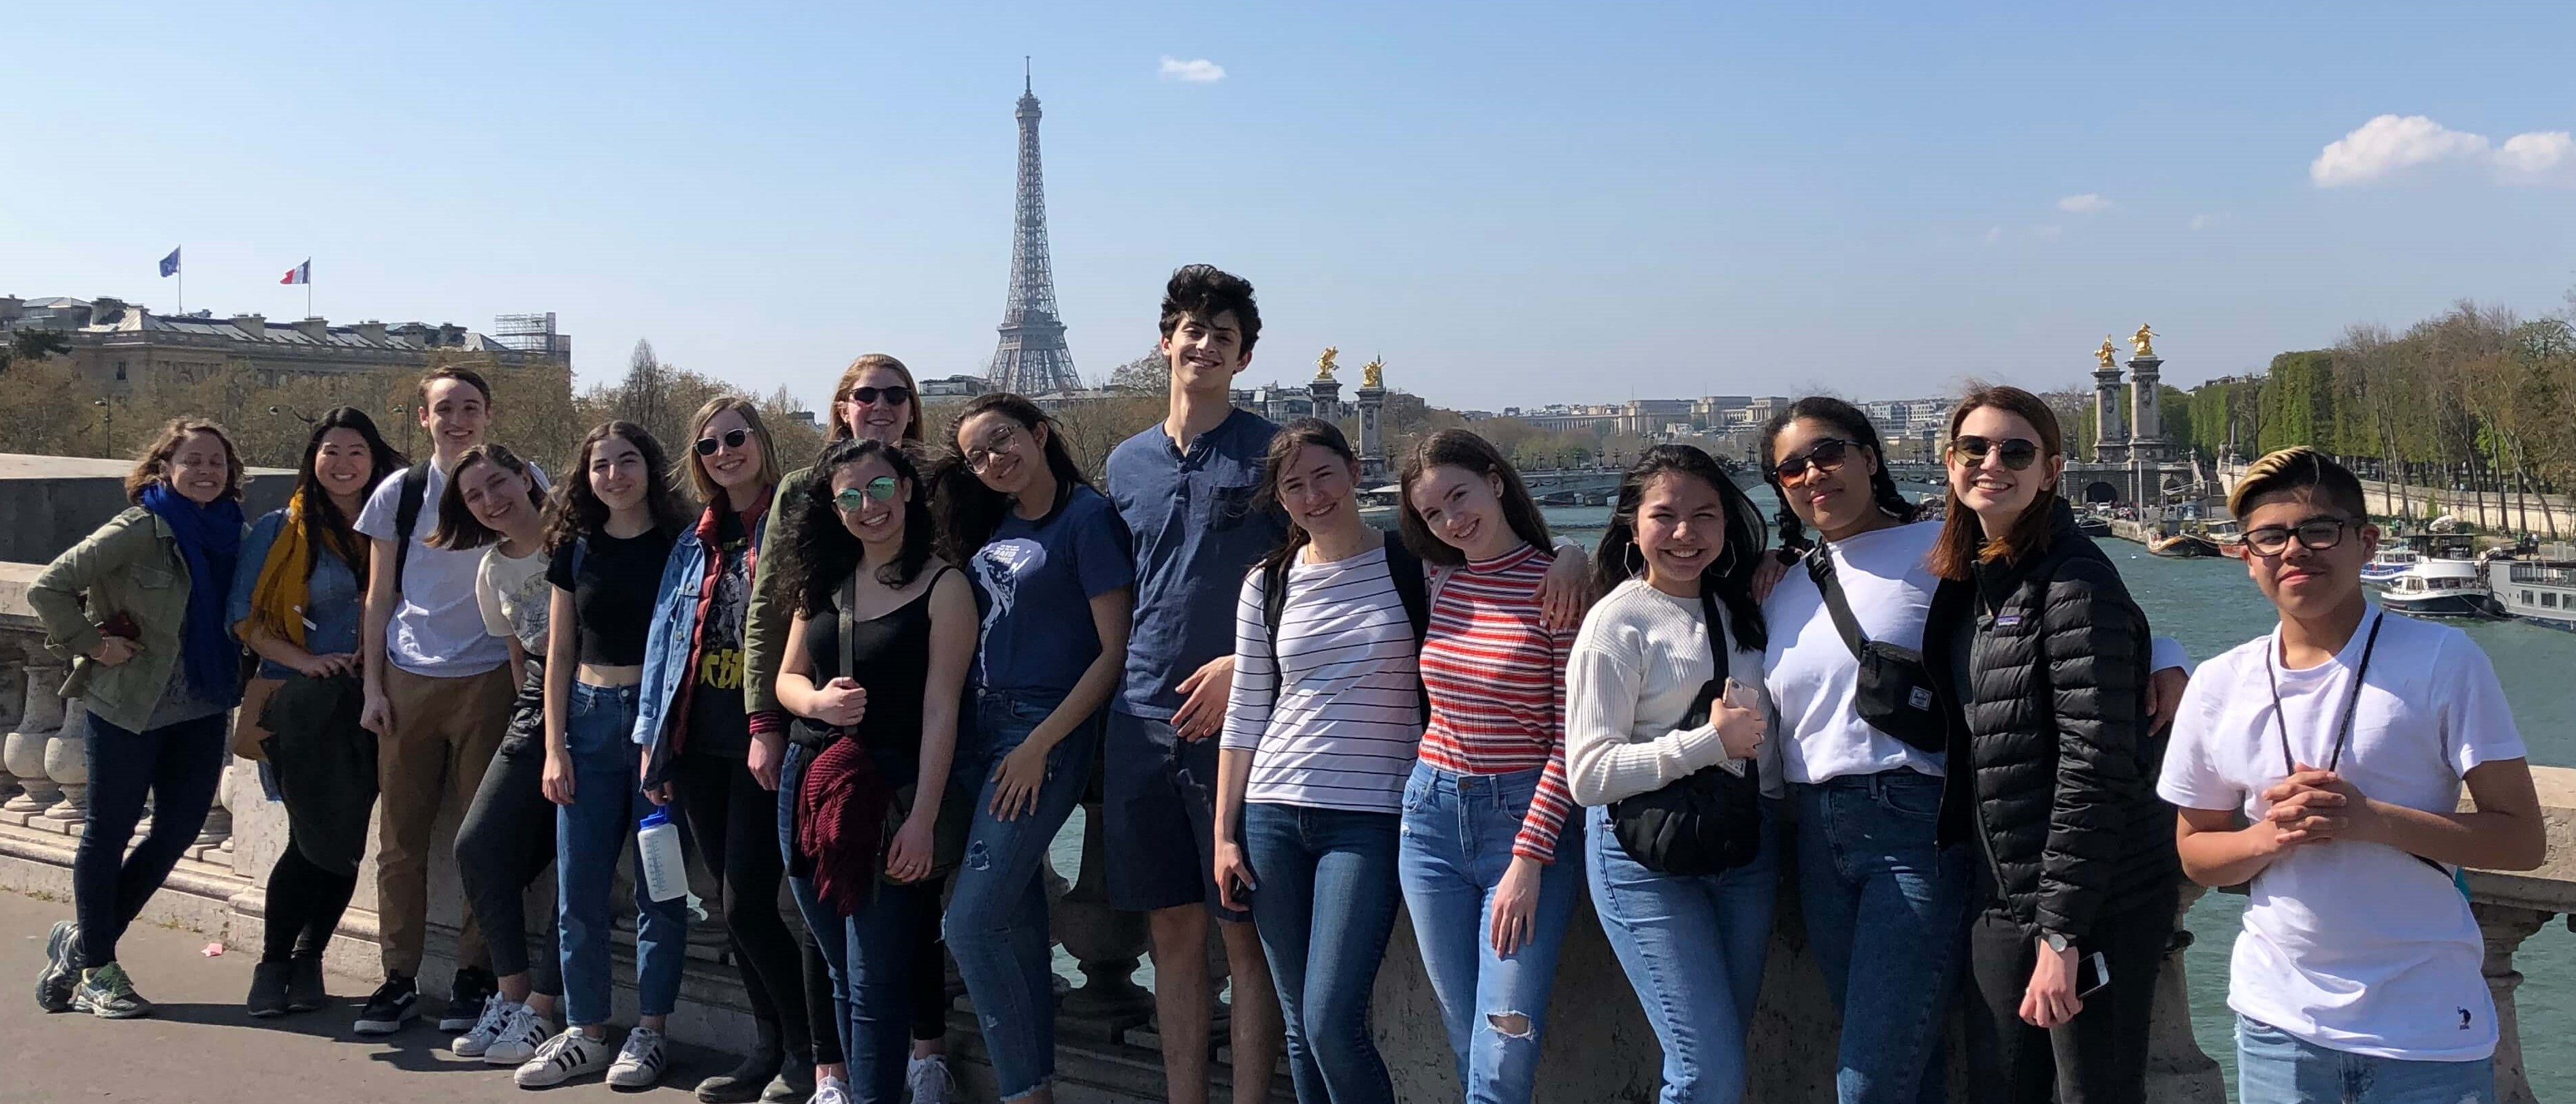 Kids in front of the Eiffel Tower